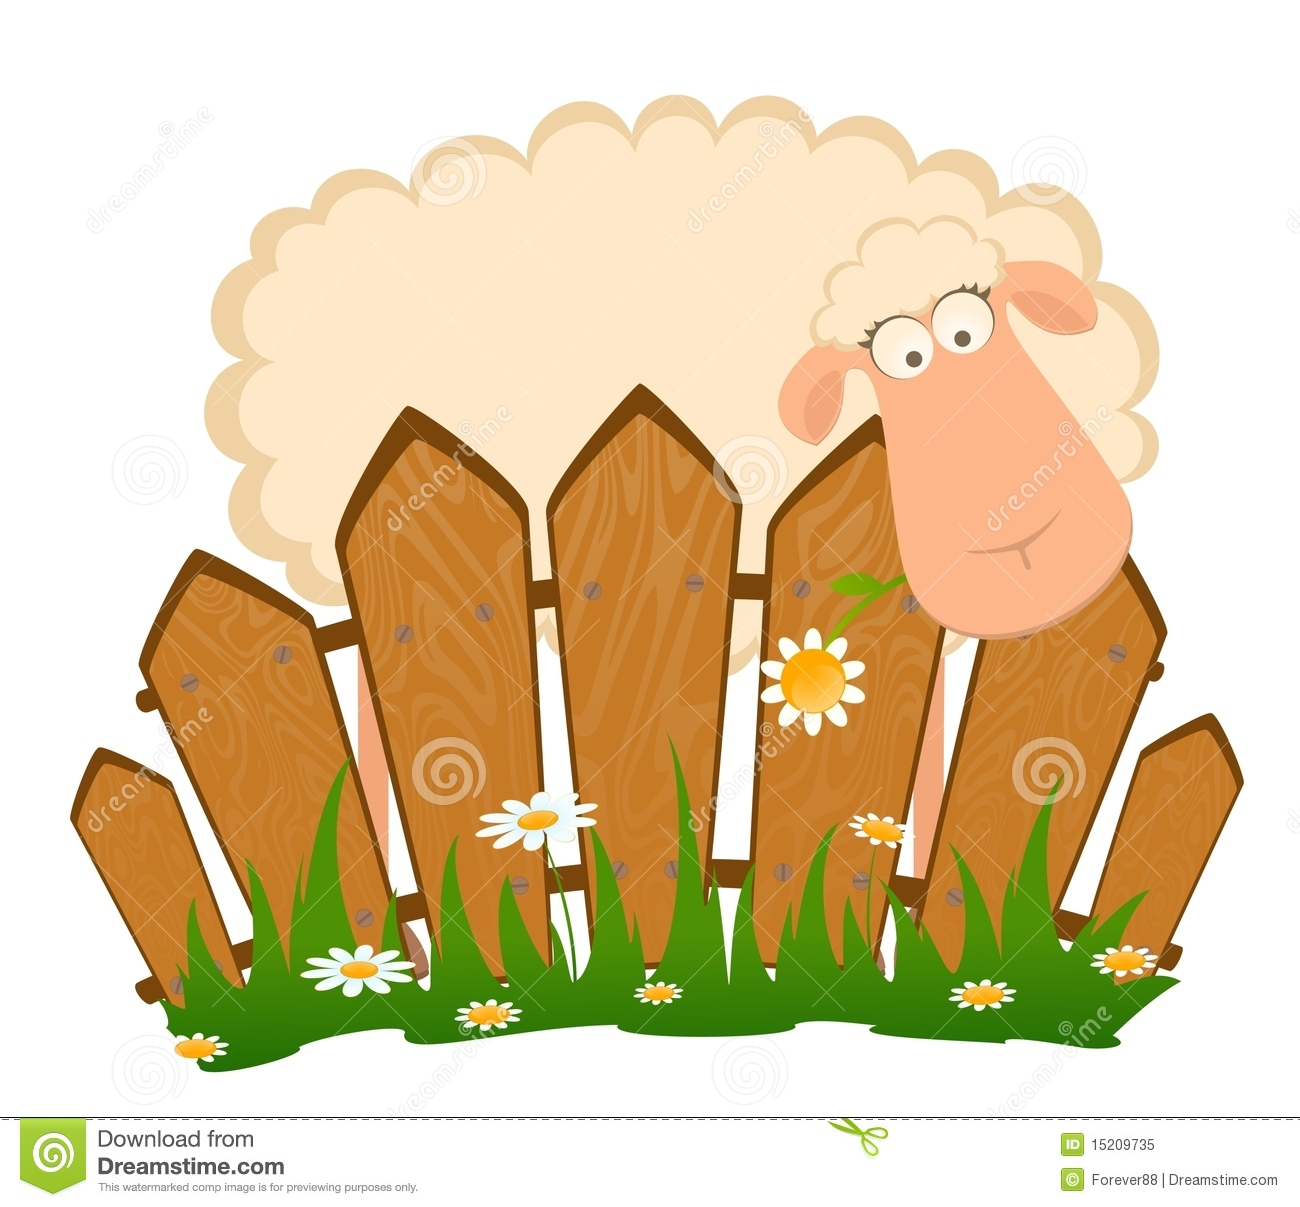 Sheep and gate clipart.